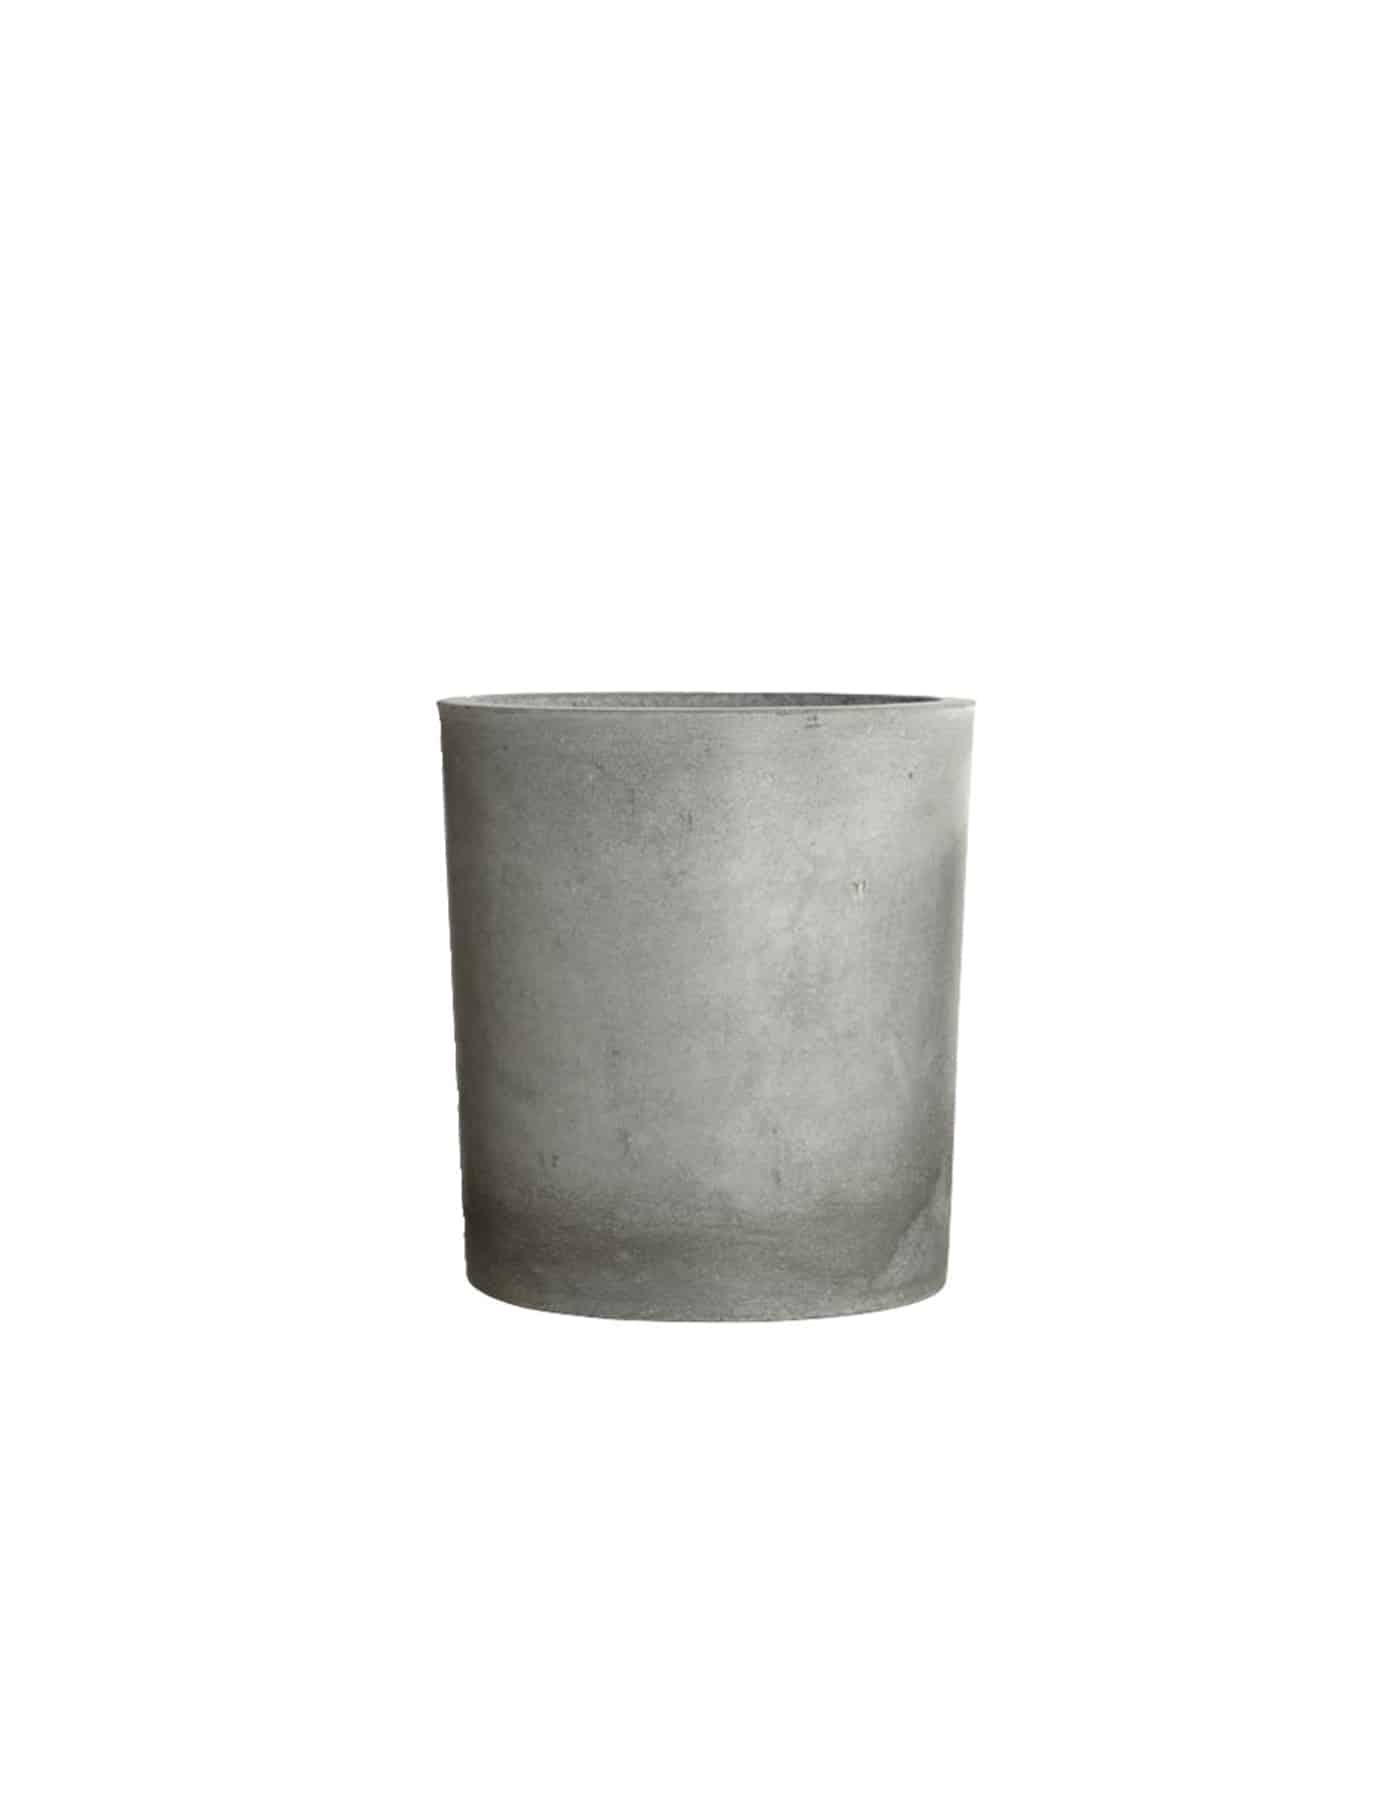 Medium Concrete Planter, House Doctor